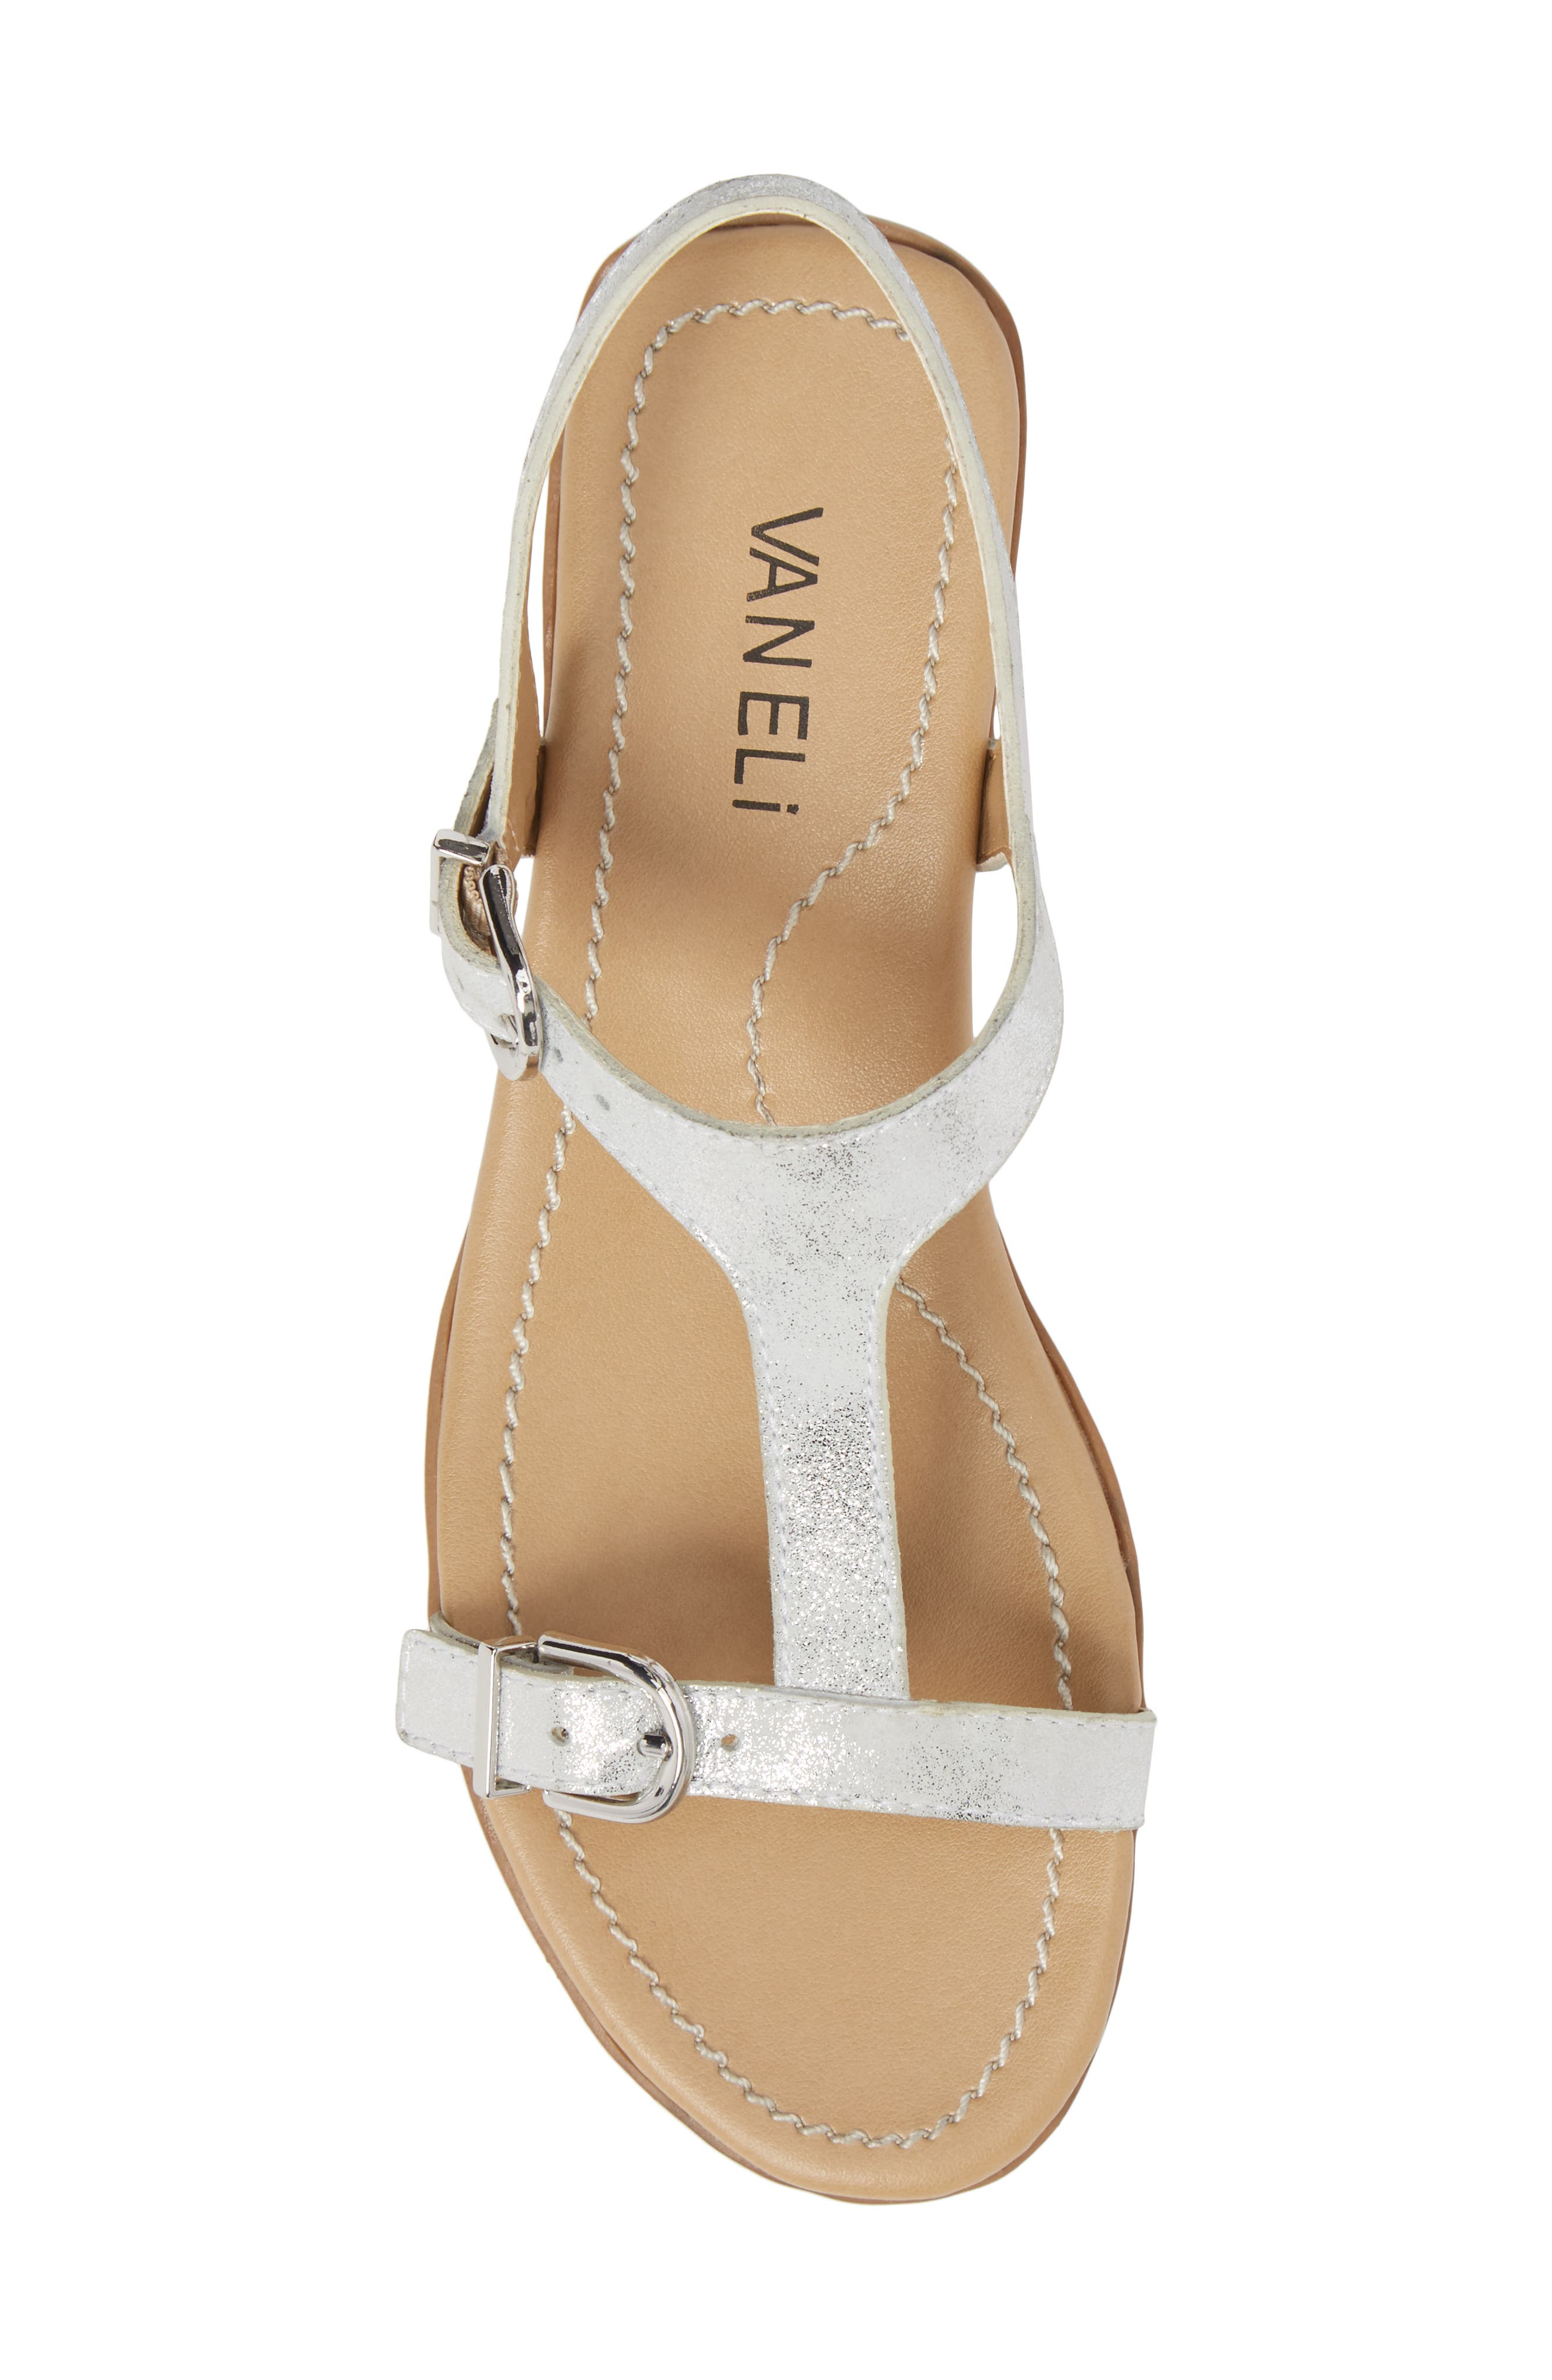 Taletha T-Strap Sandal,                             Alternate thumbnail 5, color,                             Silver Printed Suede